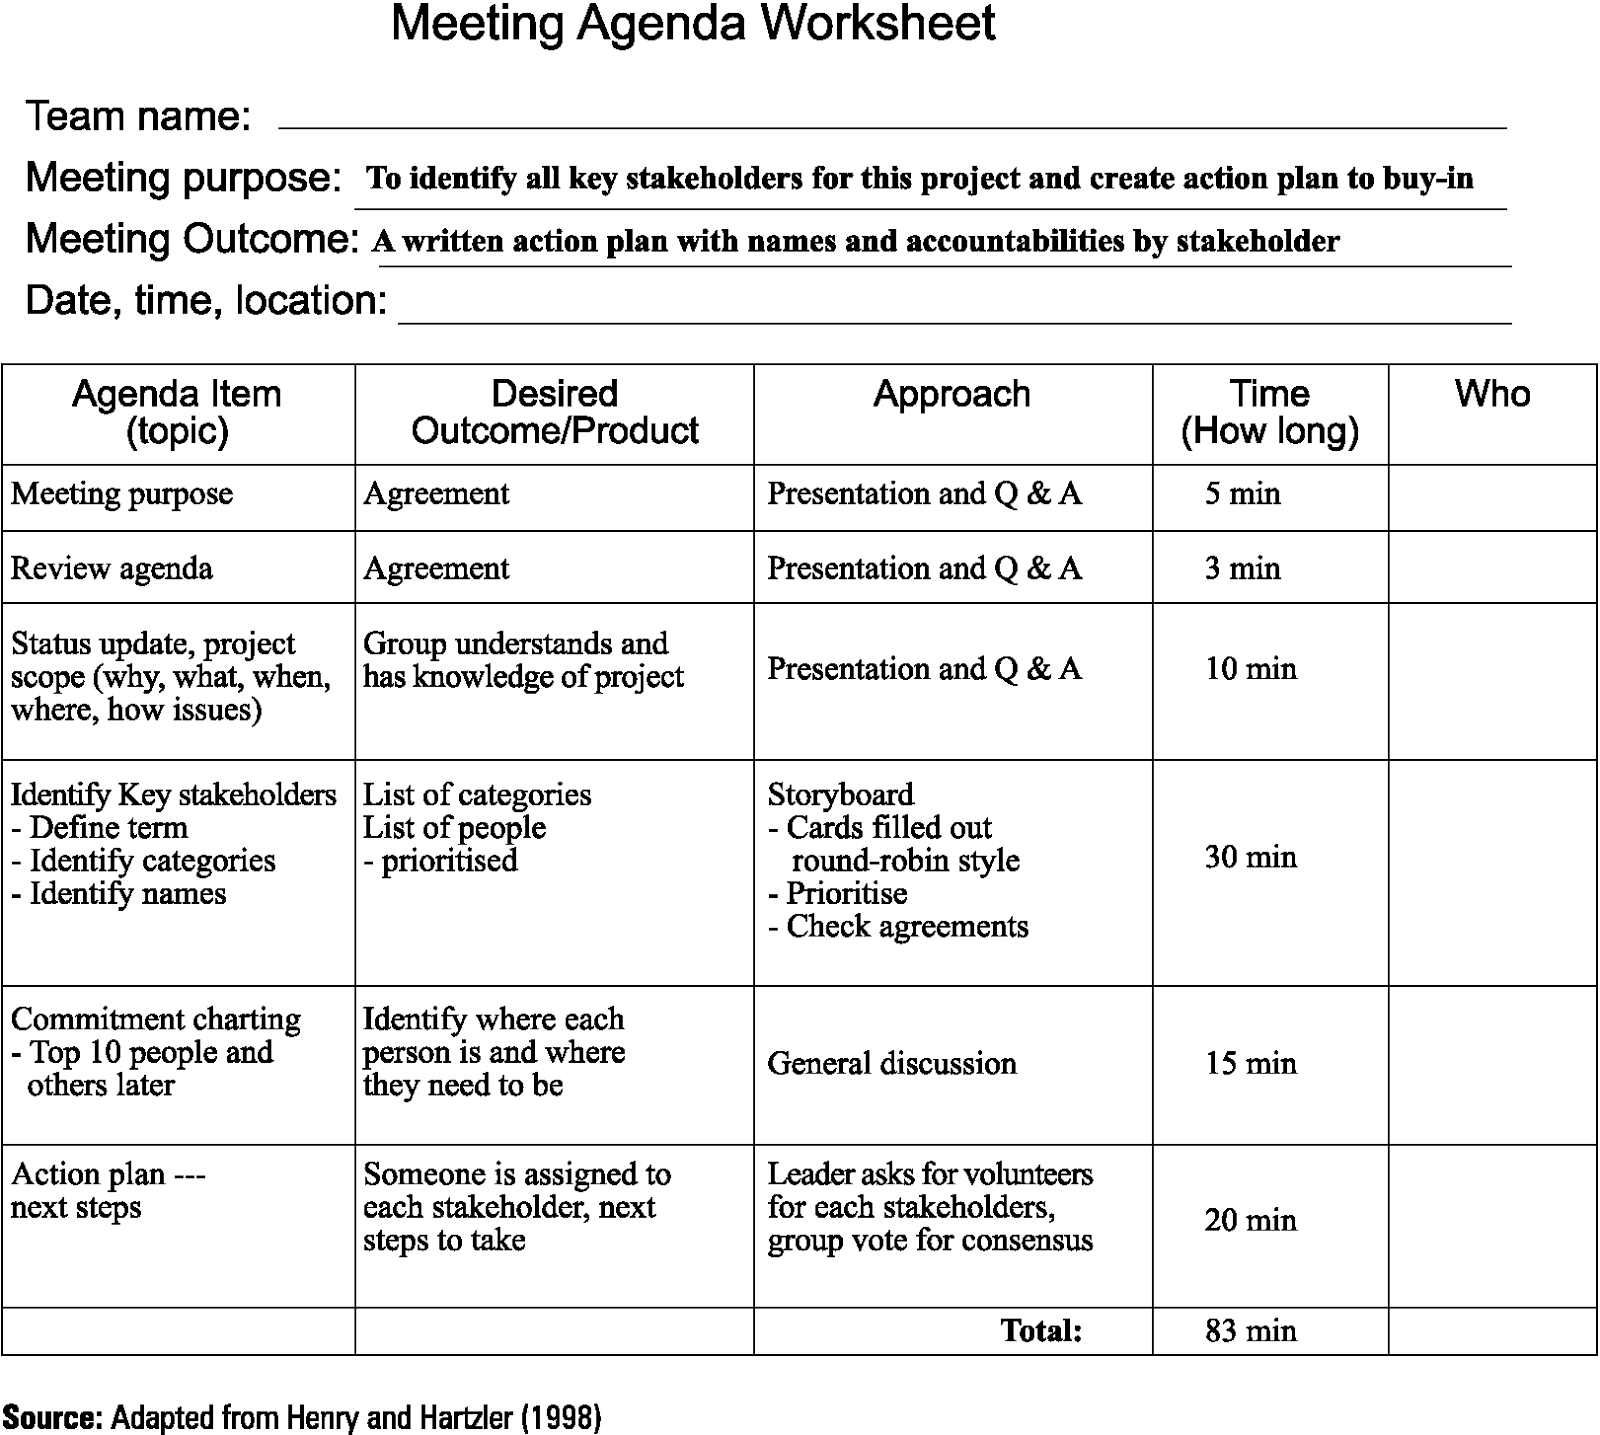 How To Plan A Productive Meeting Preparing An Agenda For A Meeting Agenda  Preparing Agenda For  Preparing Meeting Agenda